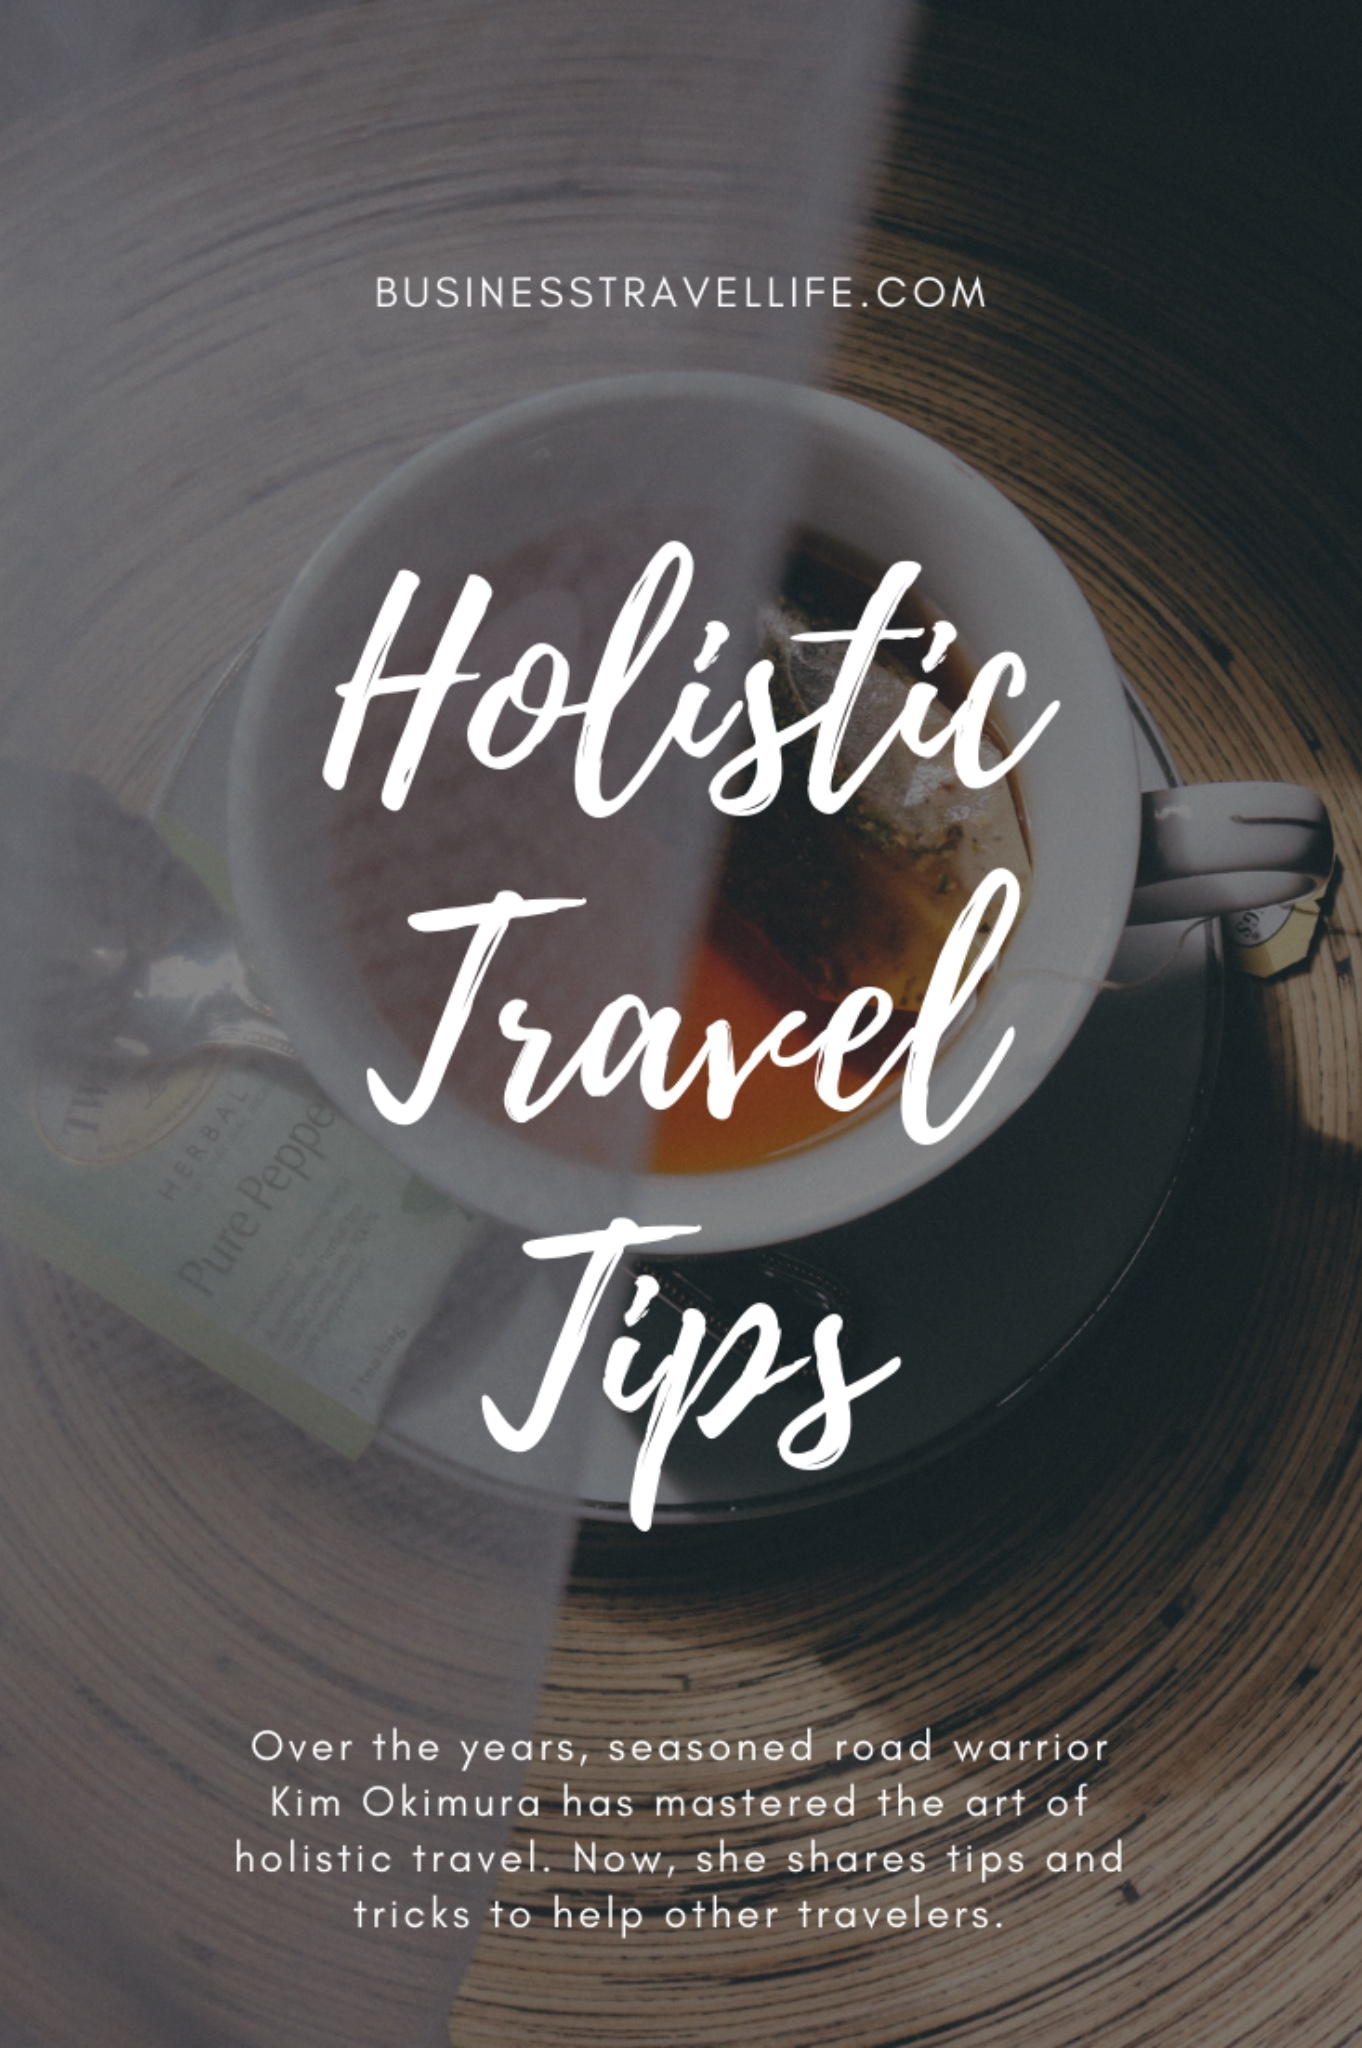 holistic travel, business travel life 2